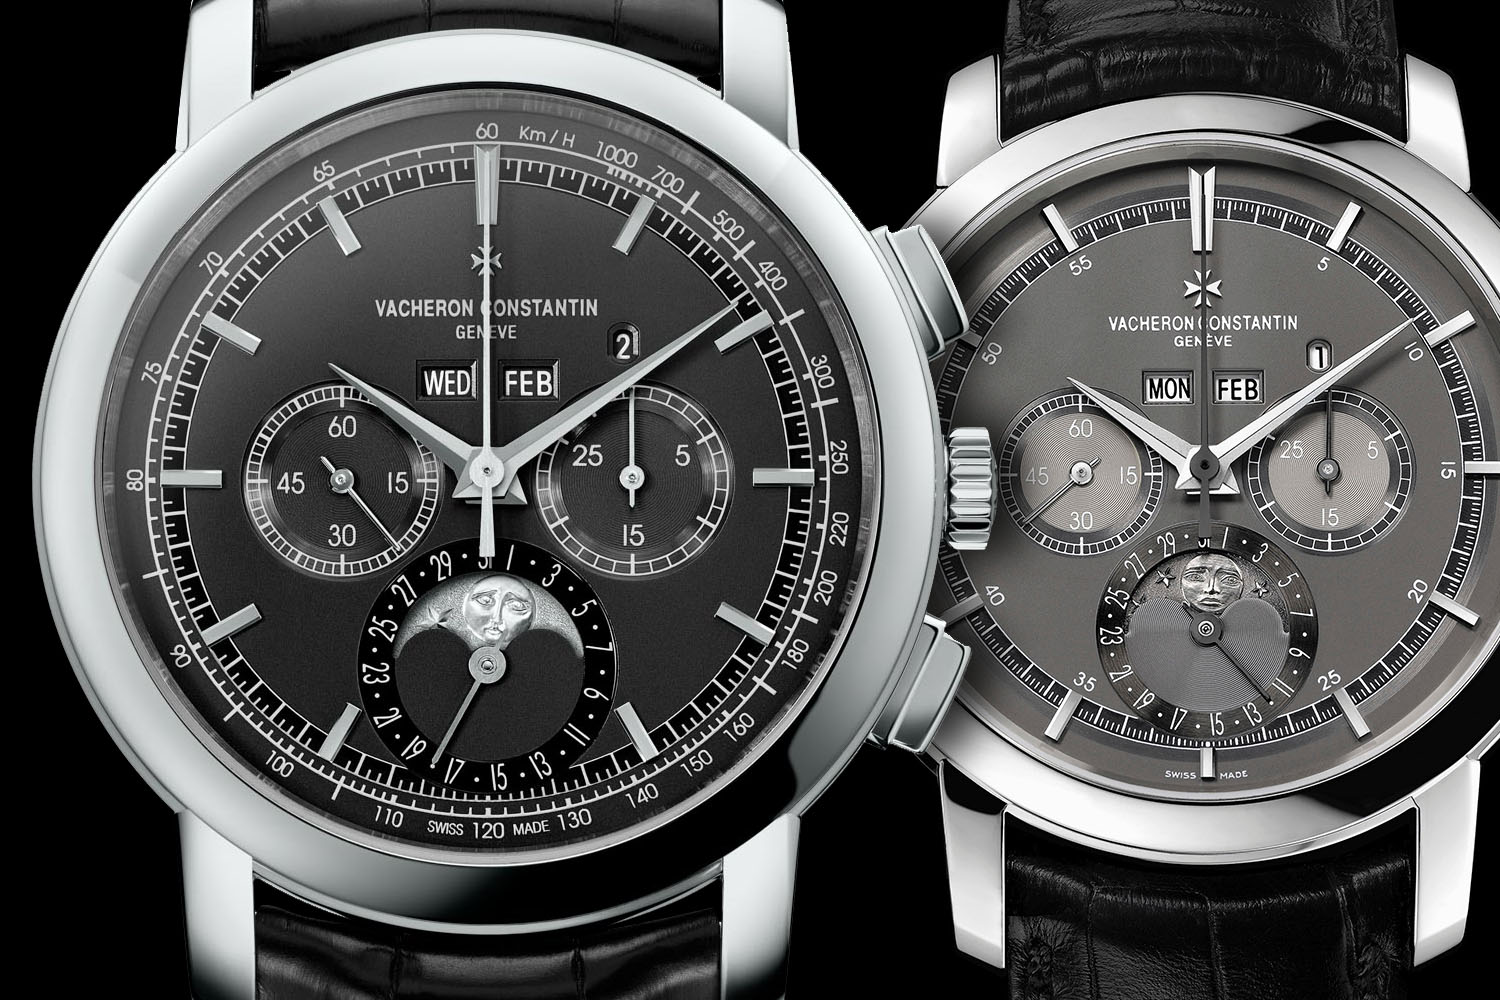 Perpetual Calendar Chronograph : Introducing the revamped vacheron constantin